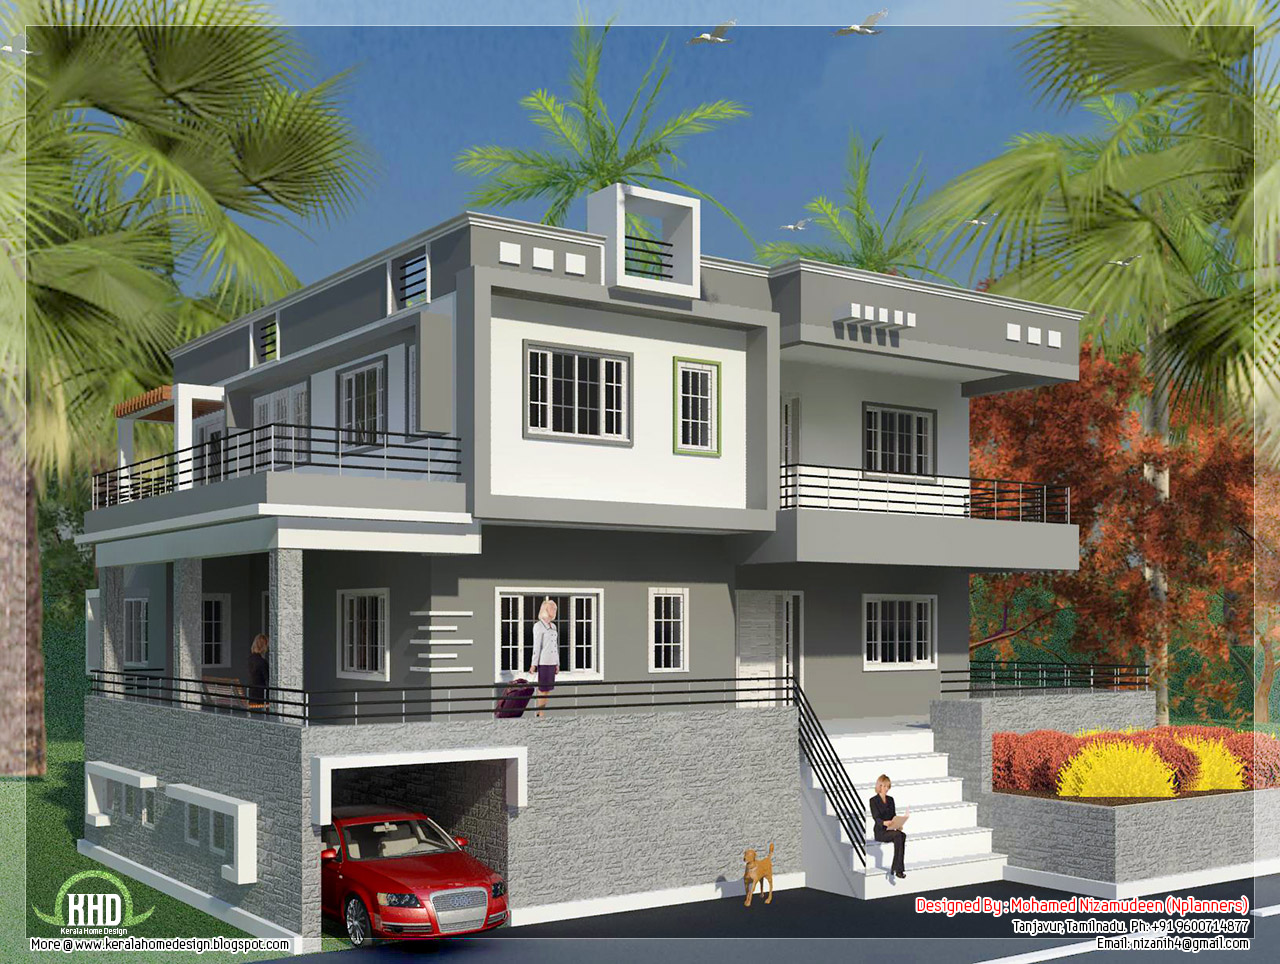 North indian style minimalist house exterior design for North indian house plans with photos